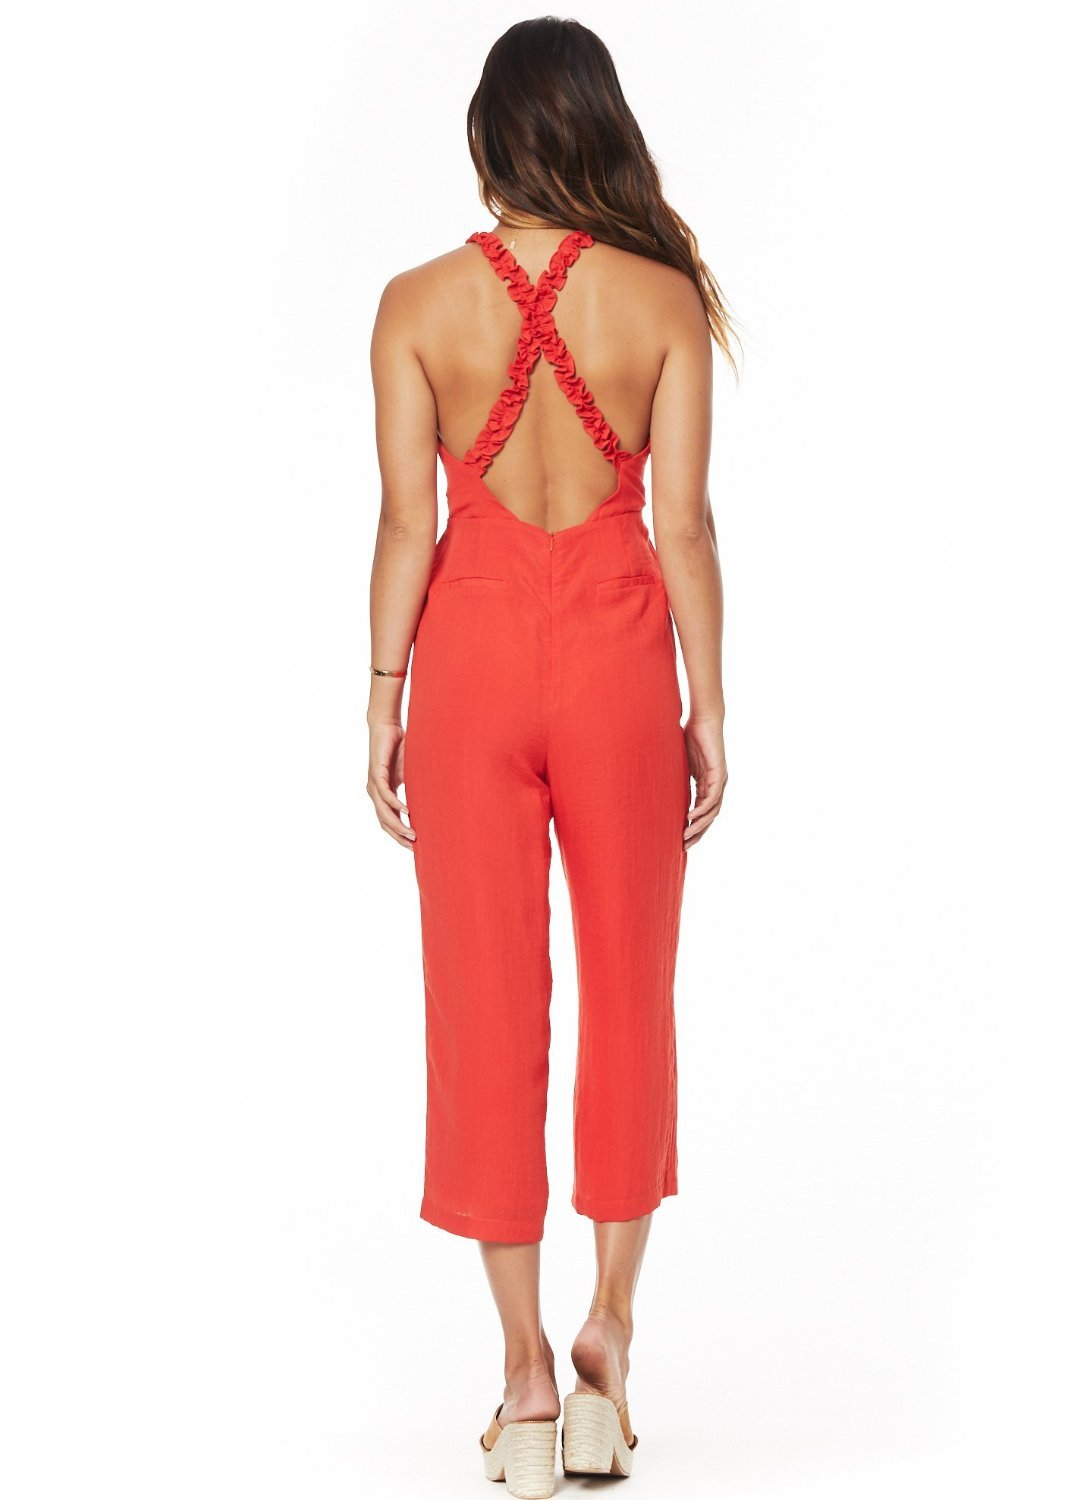 Foxie Jumpsuit - Red